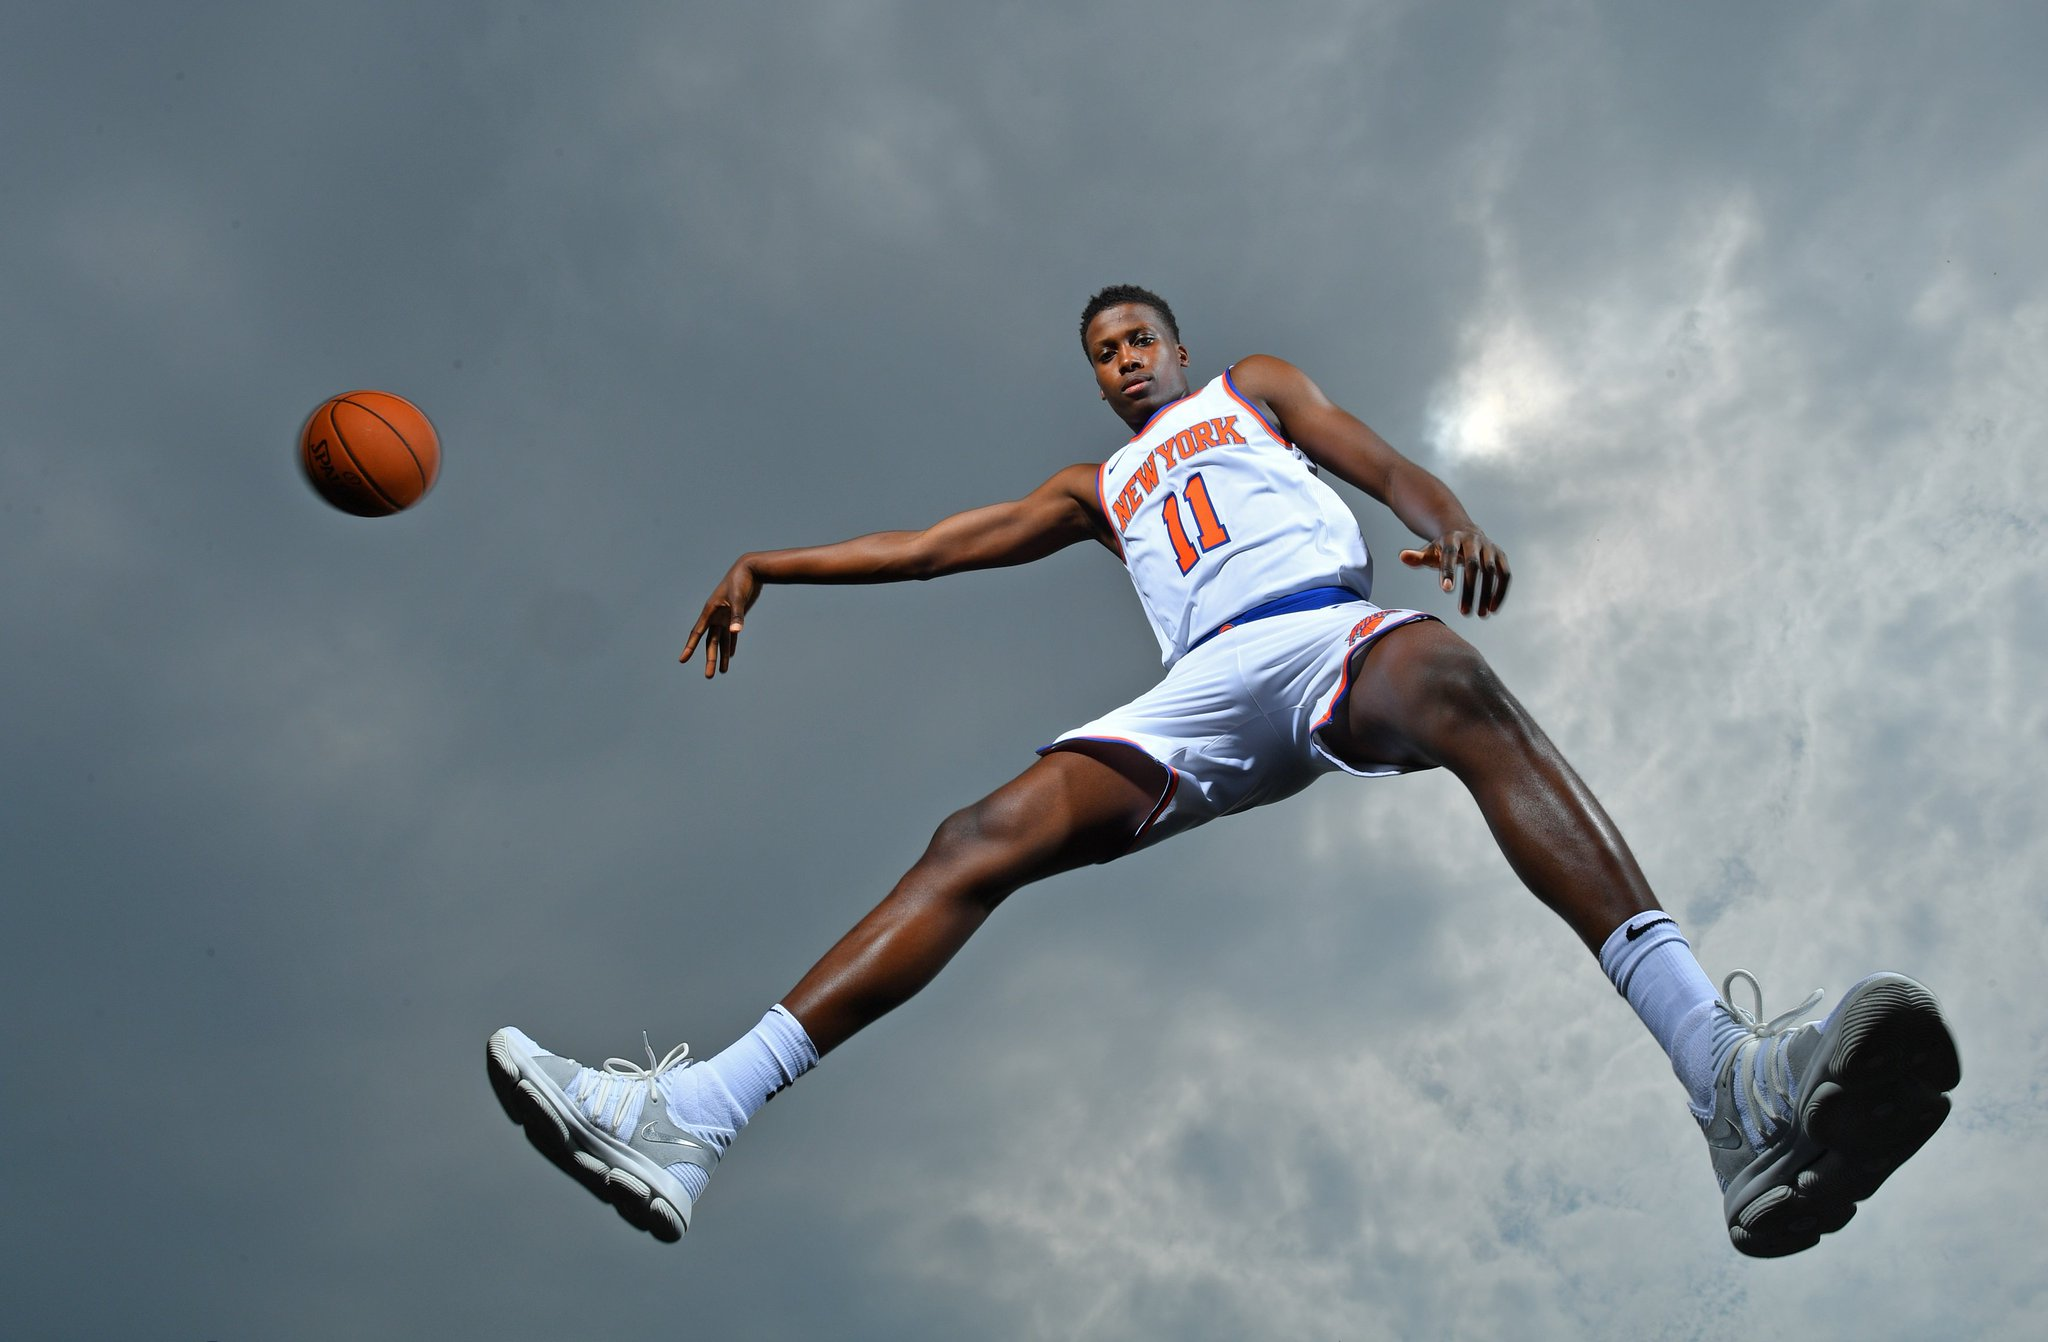 The sky's the limit! #NBARooks @FrankLikina, @Dennis1SmithJr, @1jordanbell, @jcollins20_   https://t.co/Mr12D0LheF https://t.co/Y8YQAGS6Ff